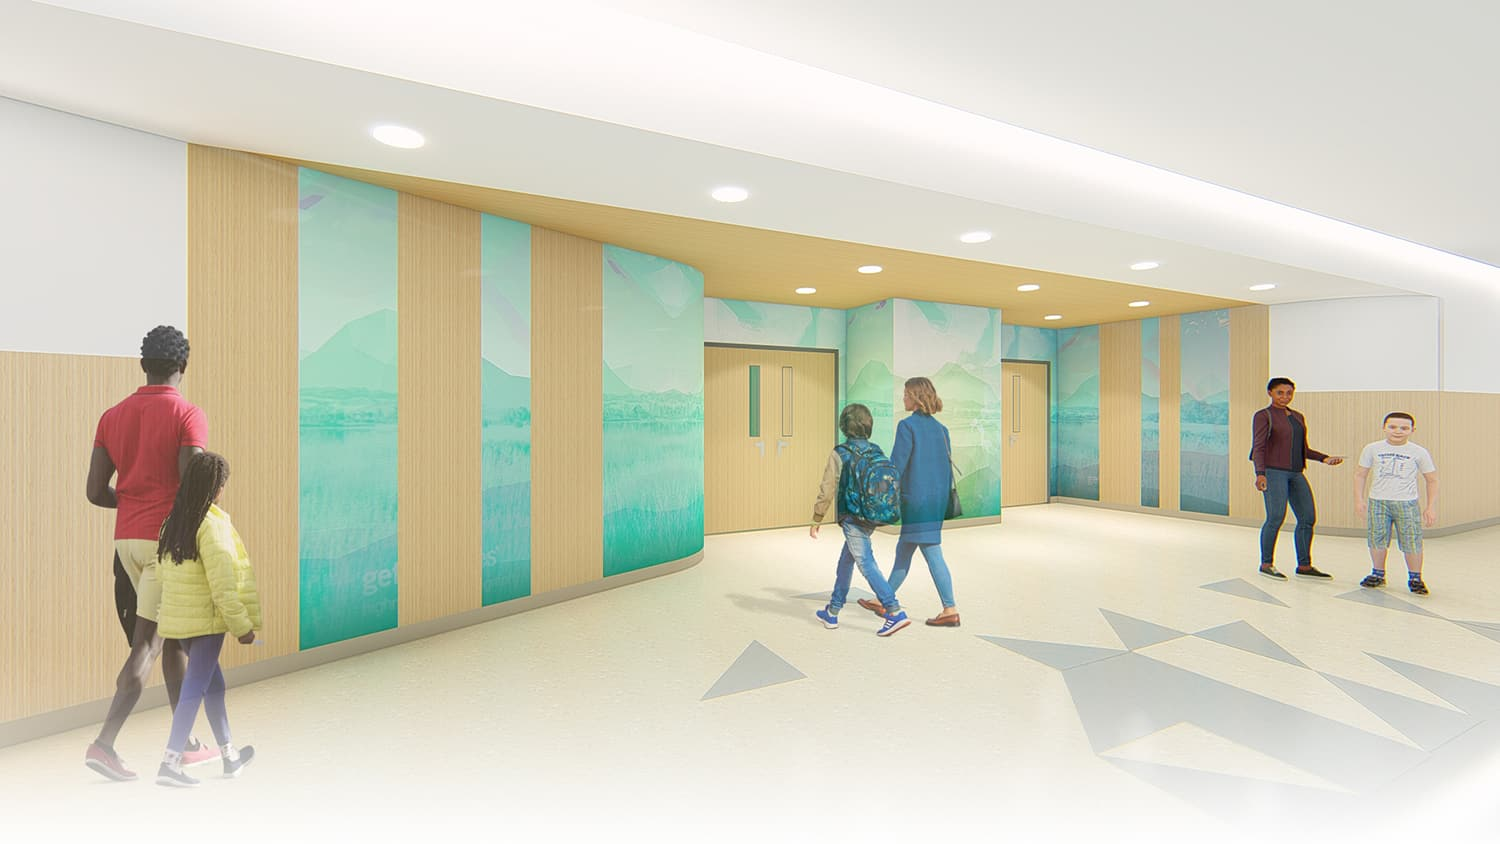 Rendering of an interior corridor with bars of calming landscape graphics.